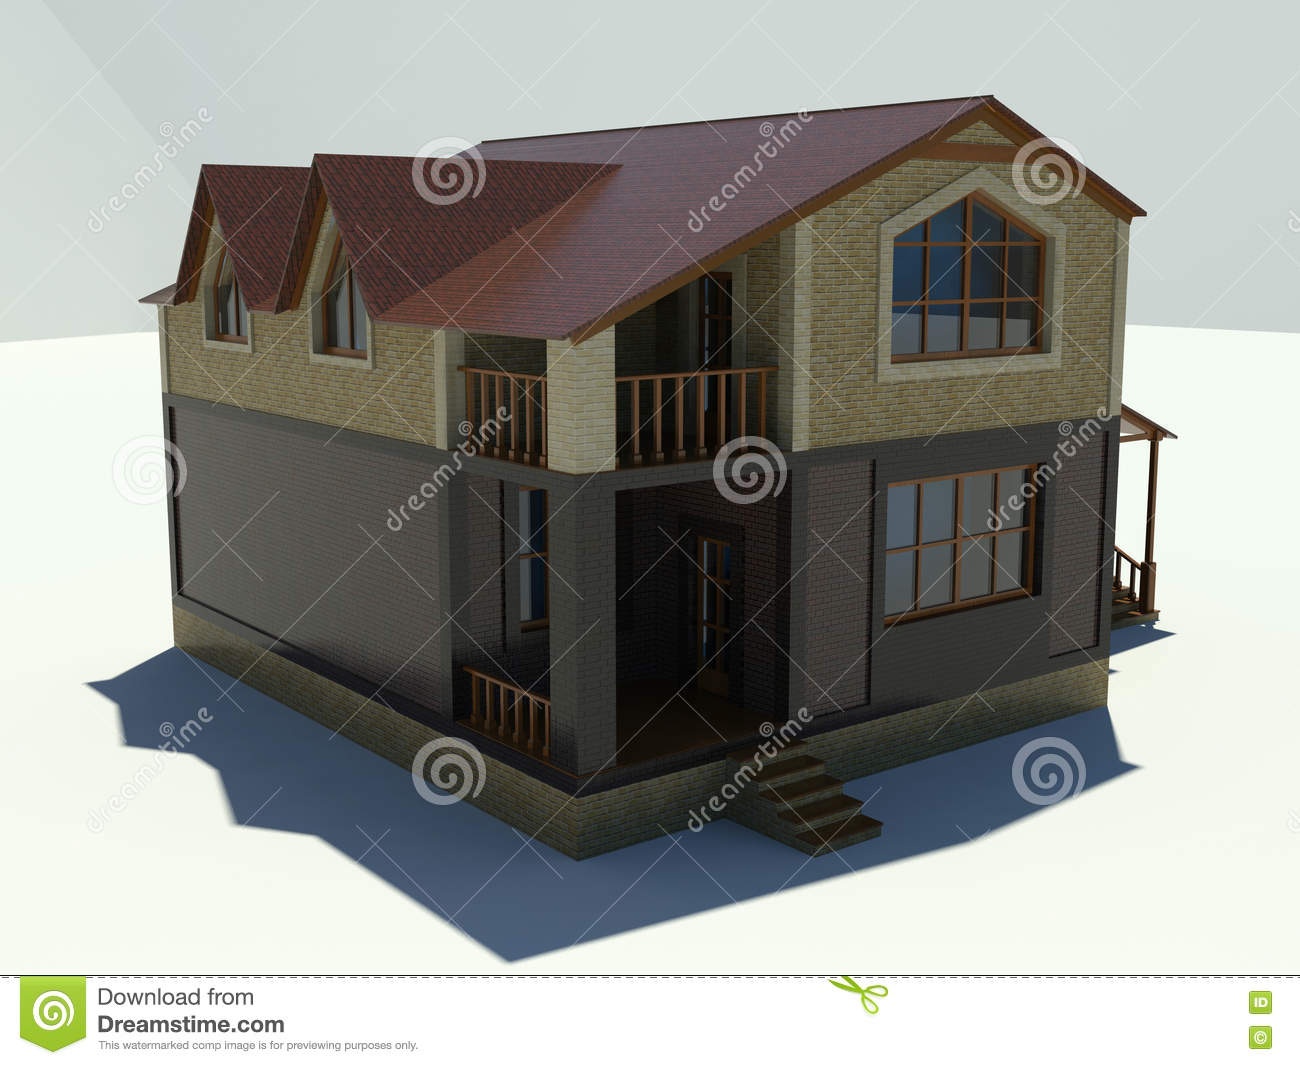 House On A White Background Royalty Free Stock Photo